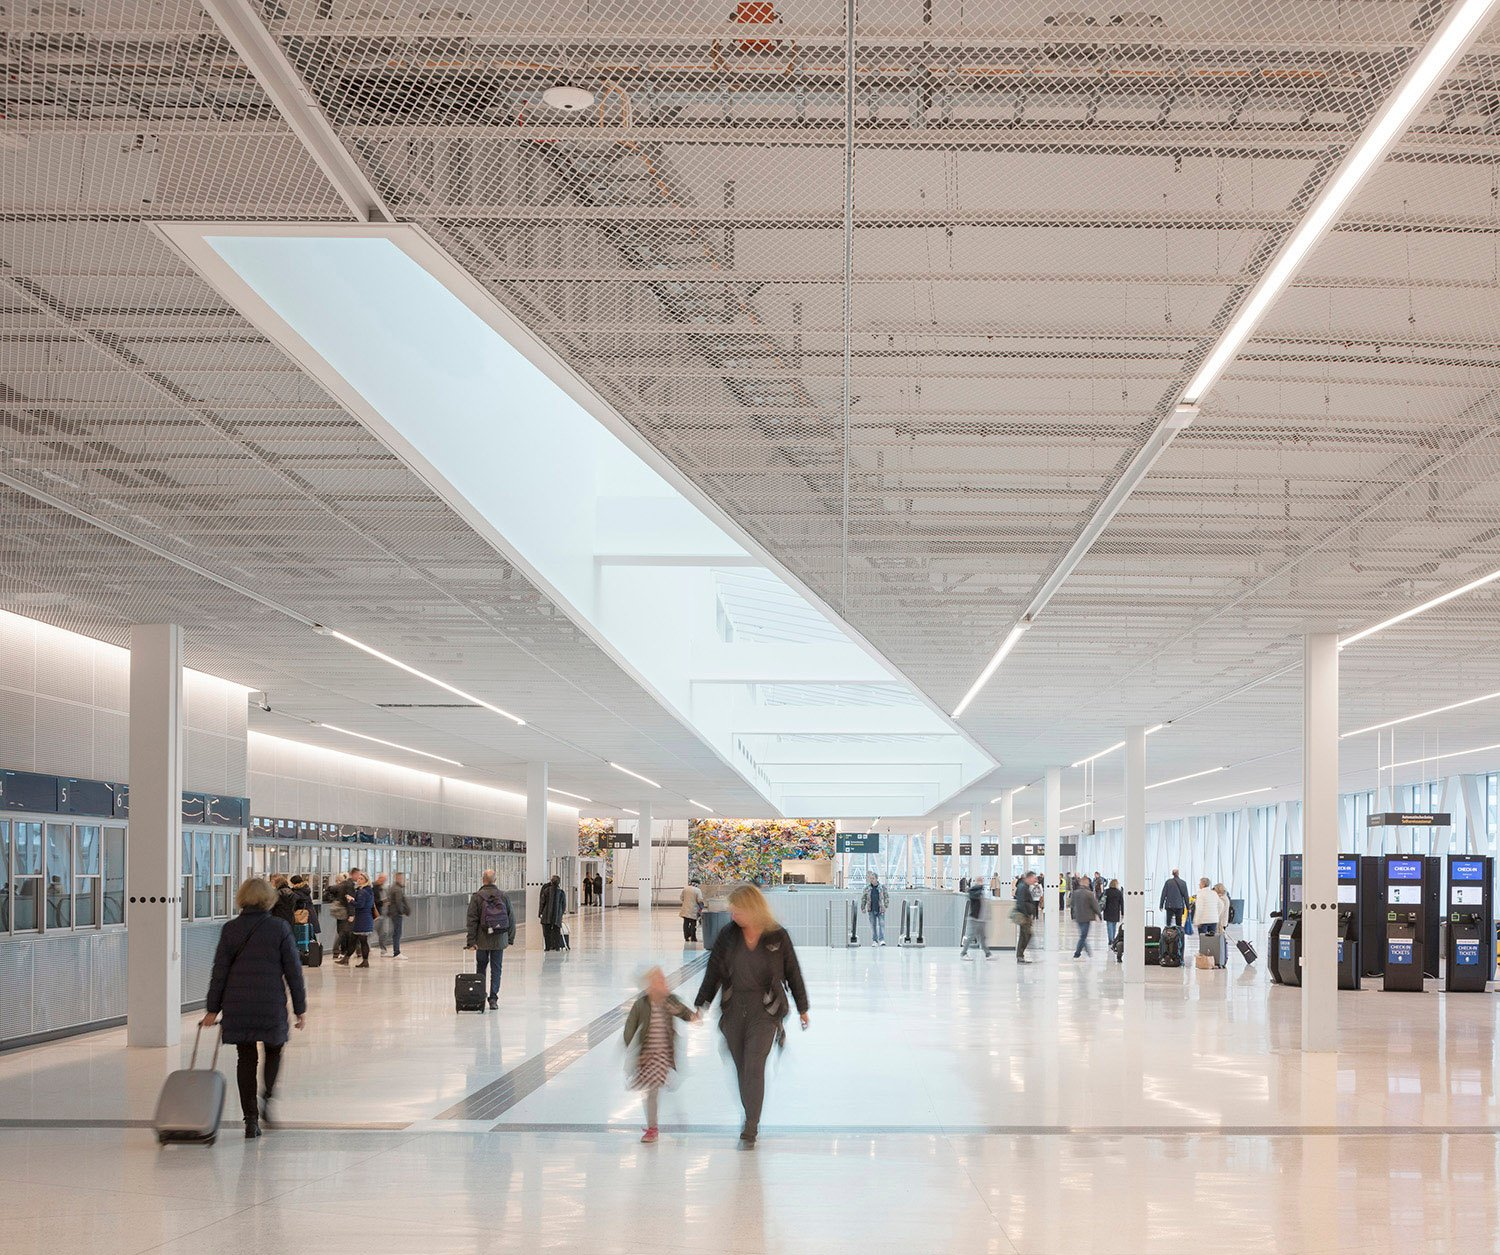 View of the departure hall with skylight and integrated art.